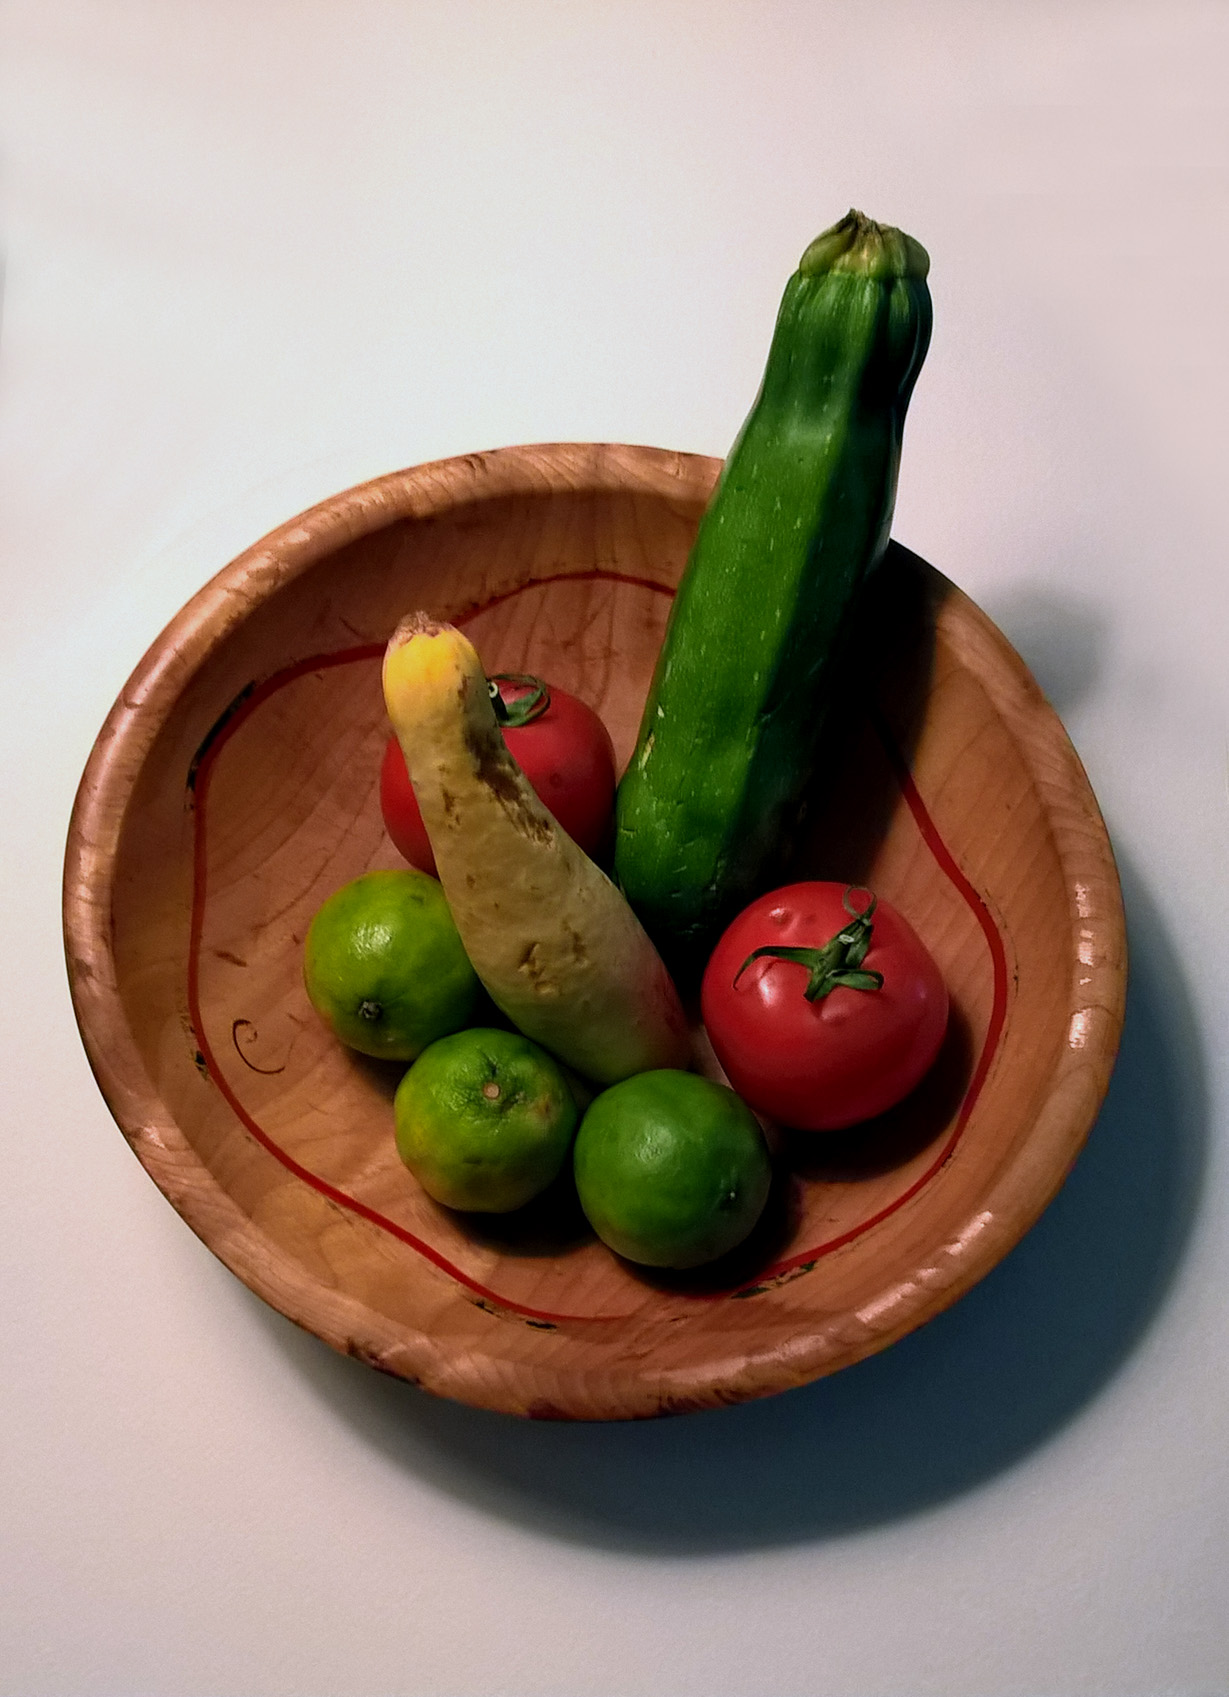 G Forss Fruit and veggies in bowl small file